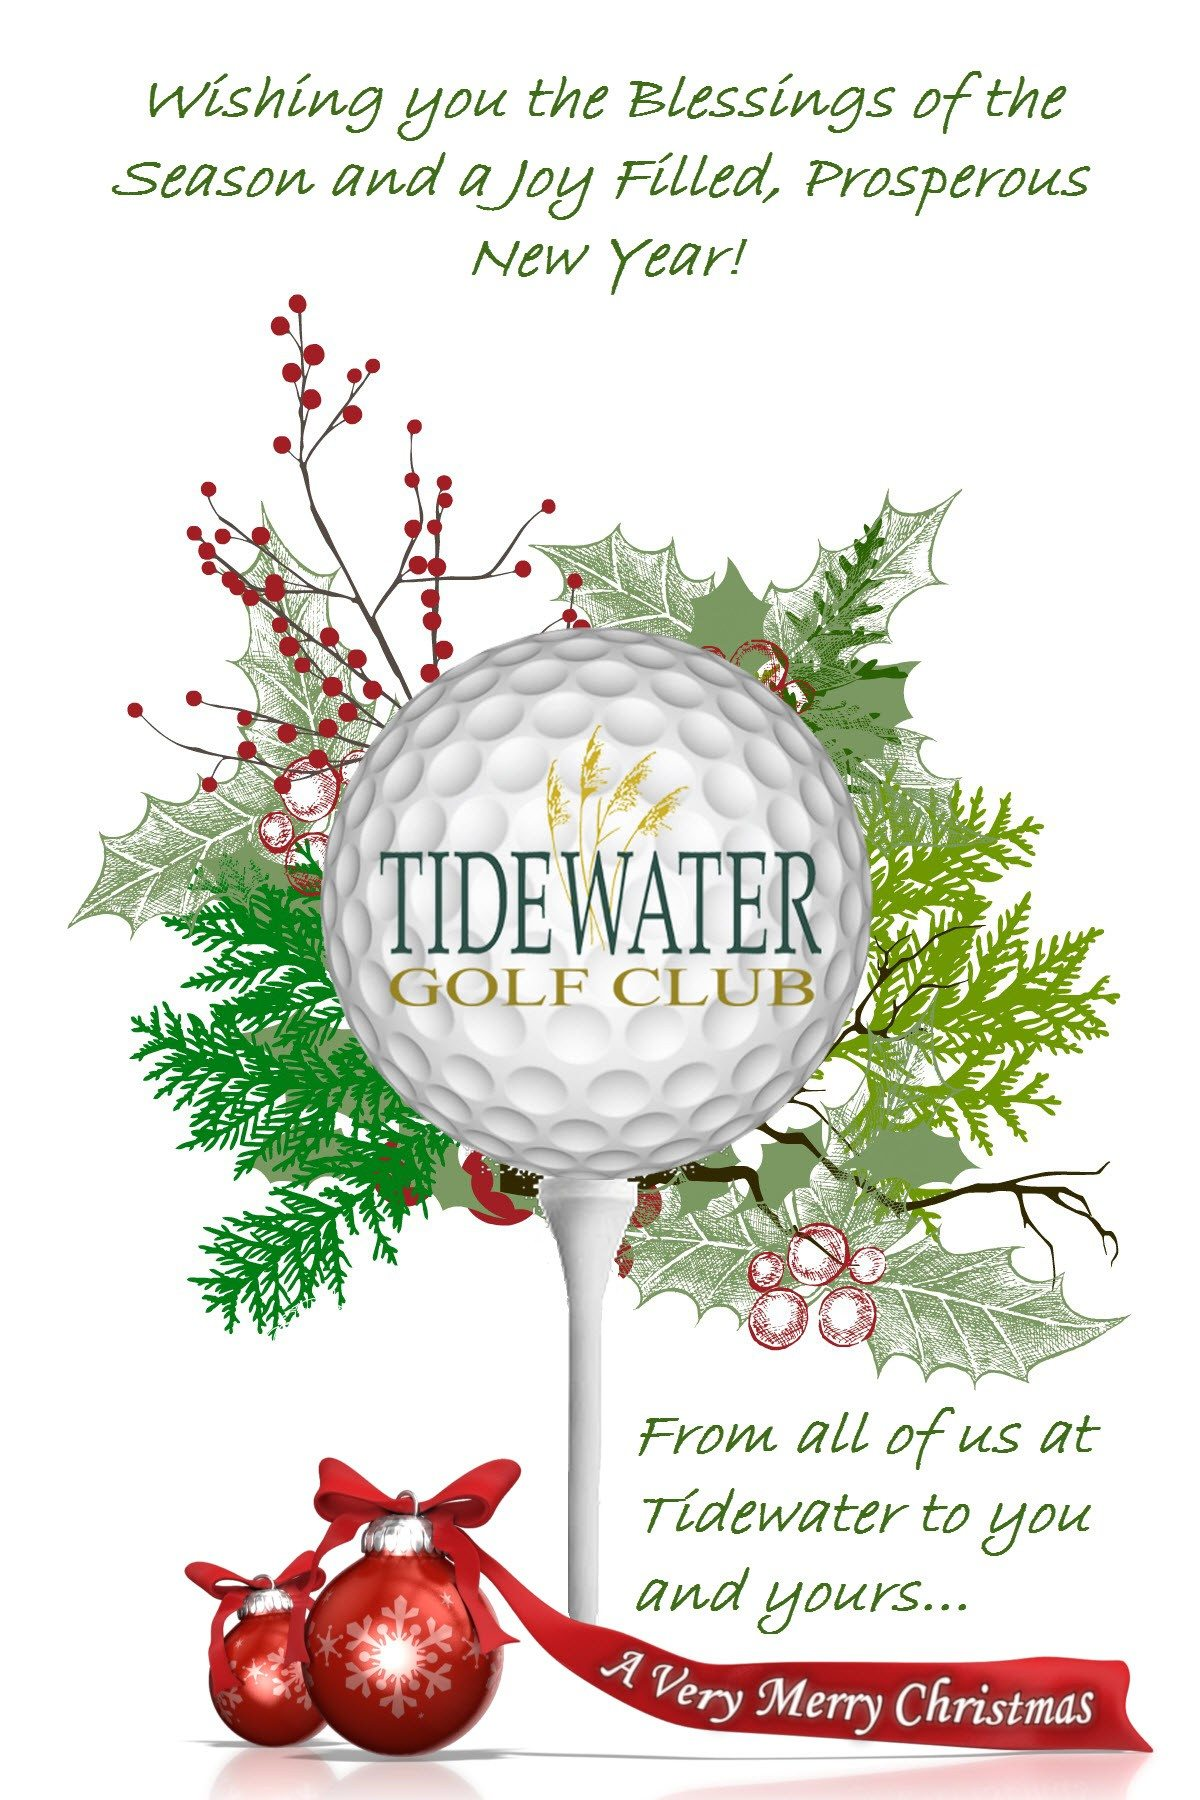 merry christmas from our family to yours myrtle beach sc tidewater golf club